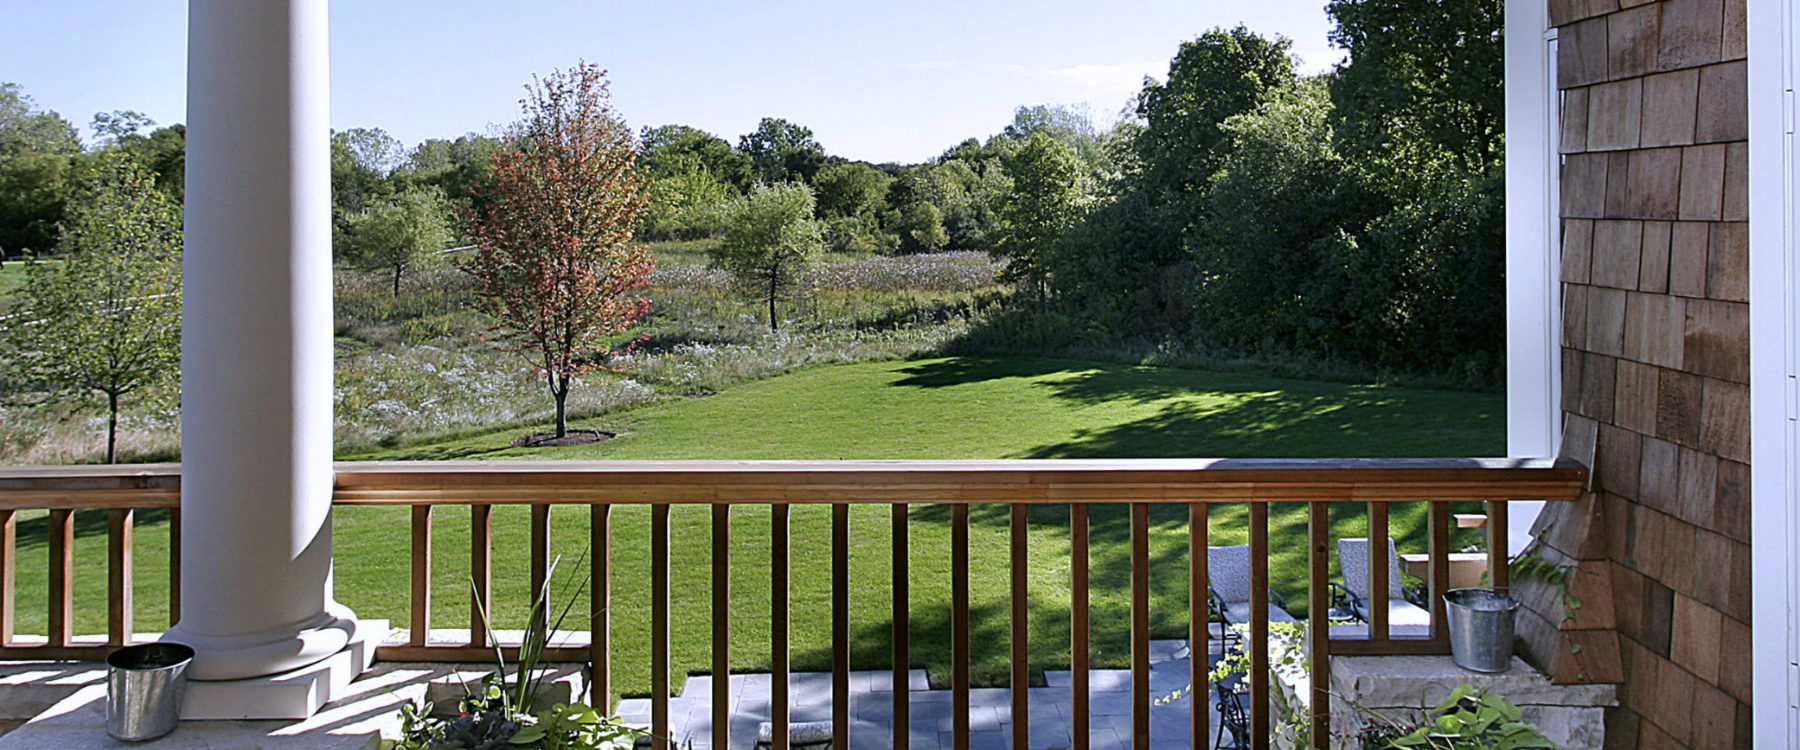 Rear deck overlooking green area BRIX Group